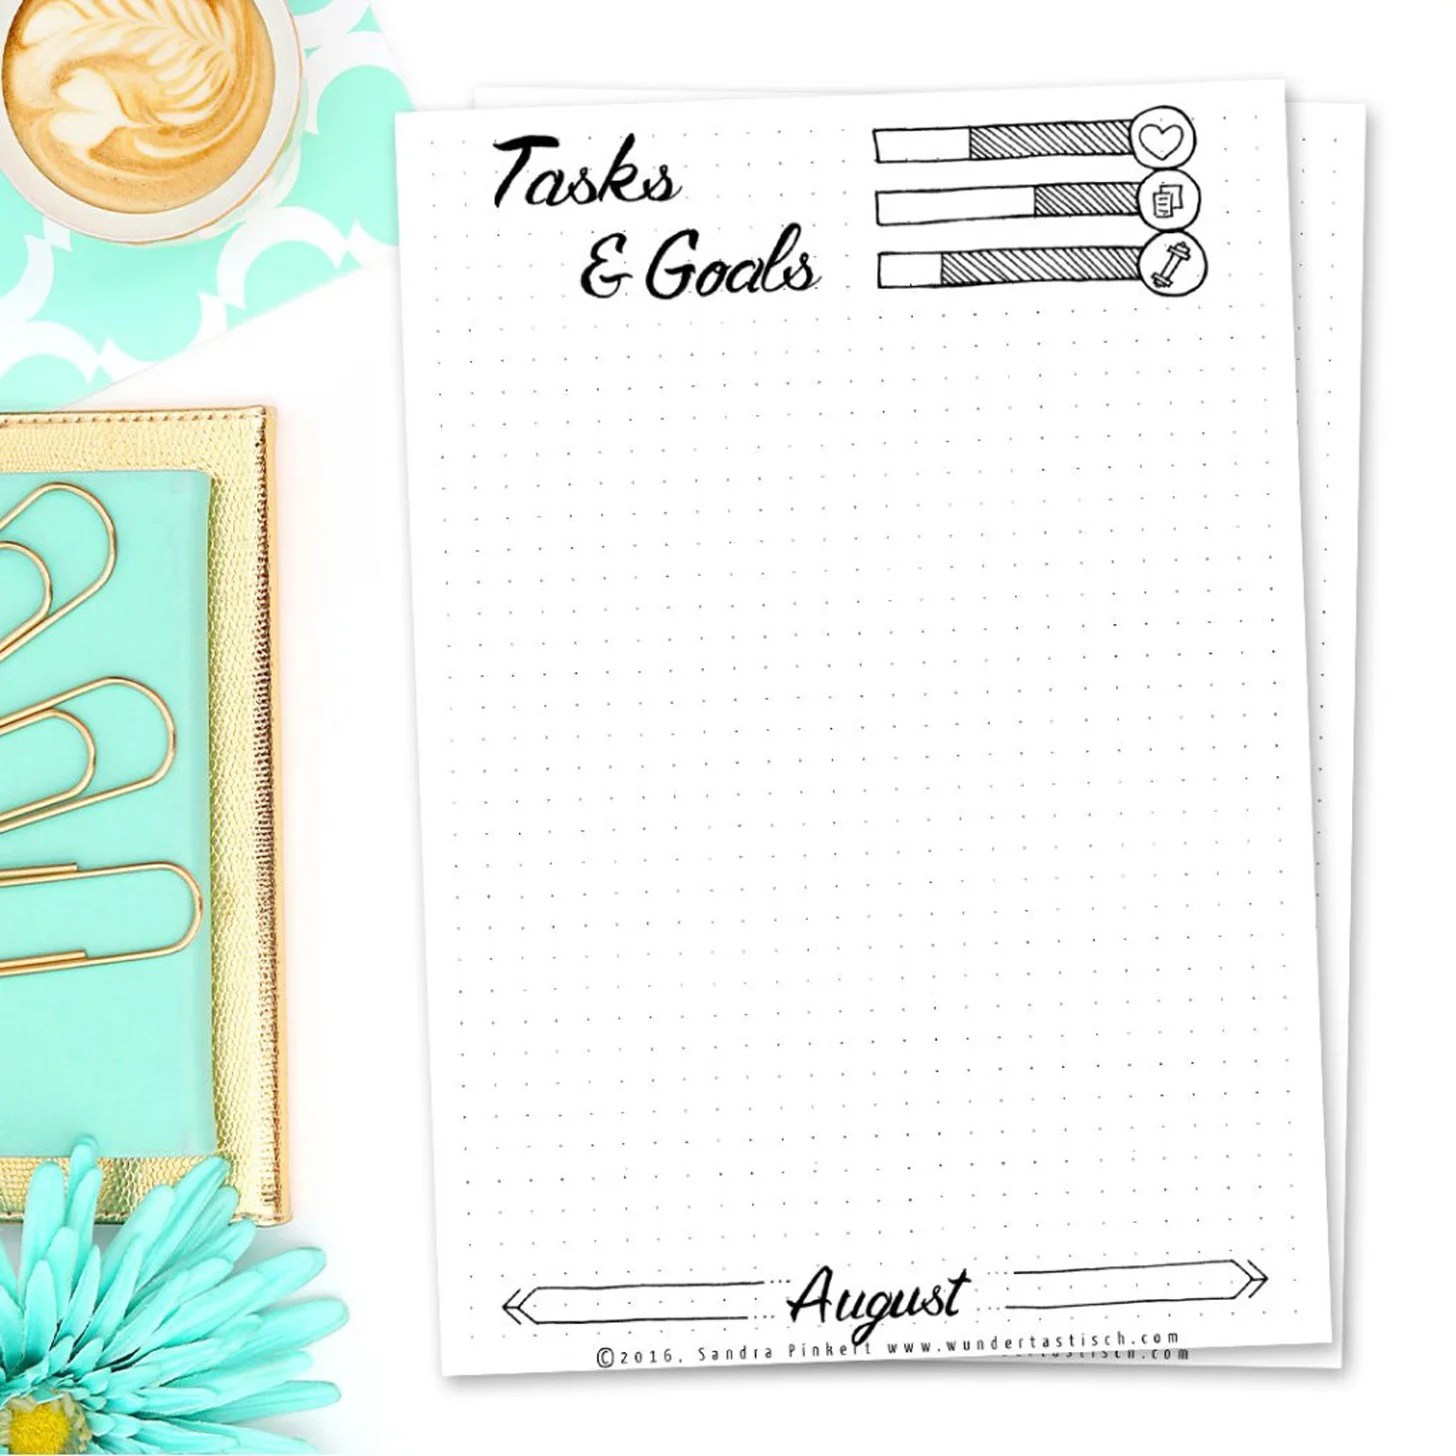 Printable Goal Sheets That Are Irresistible